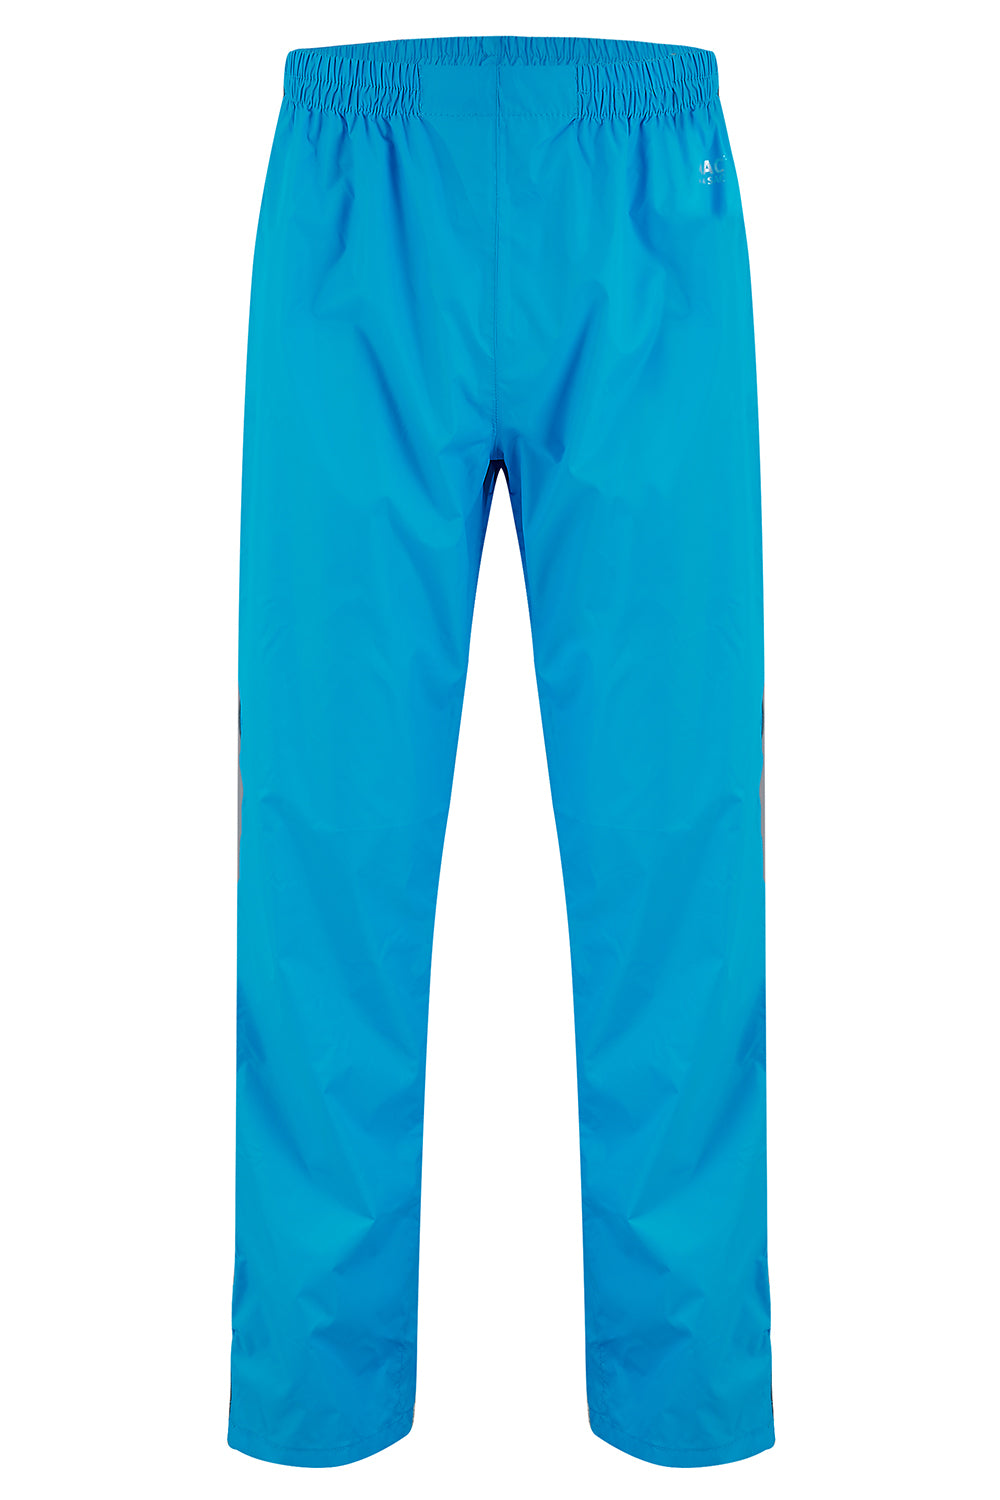 Overtrousers Packable Full Zip Waterproof Overtrousers - Neon Blue